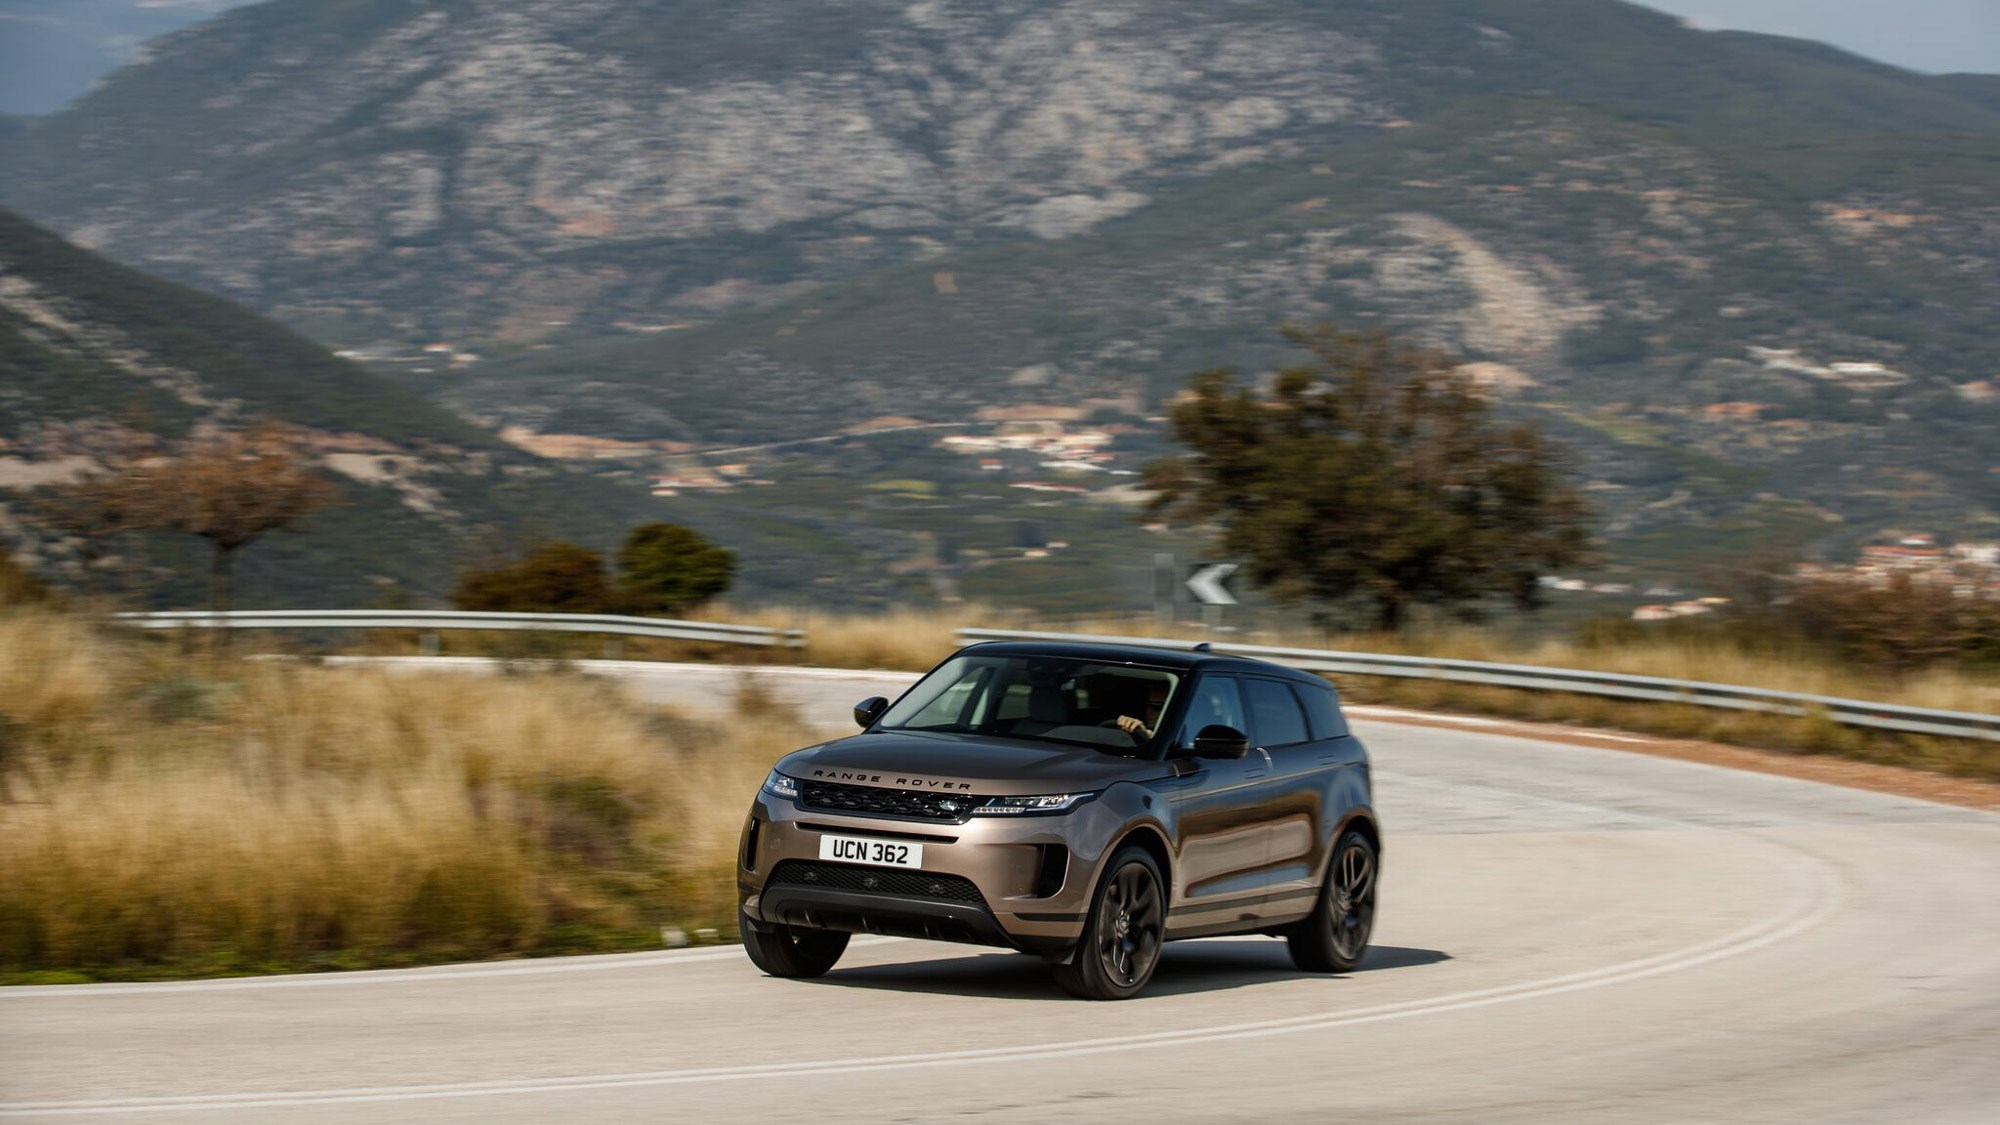 Range Rover Evoque's handling is composed and poised